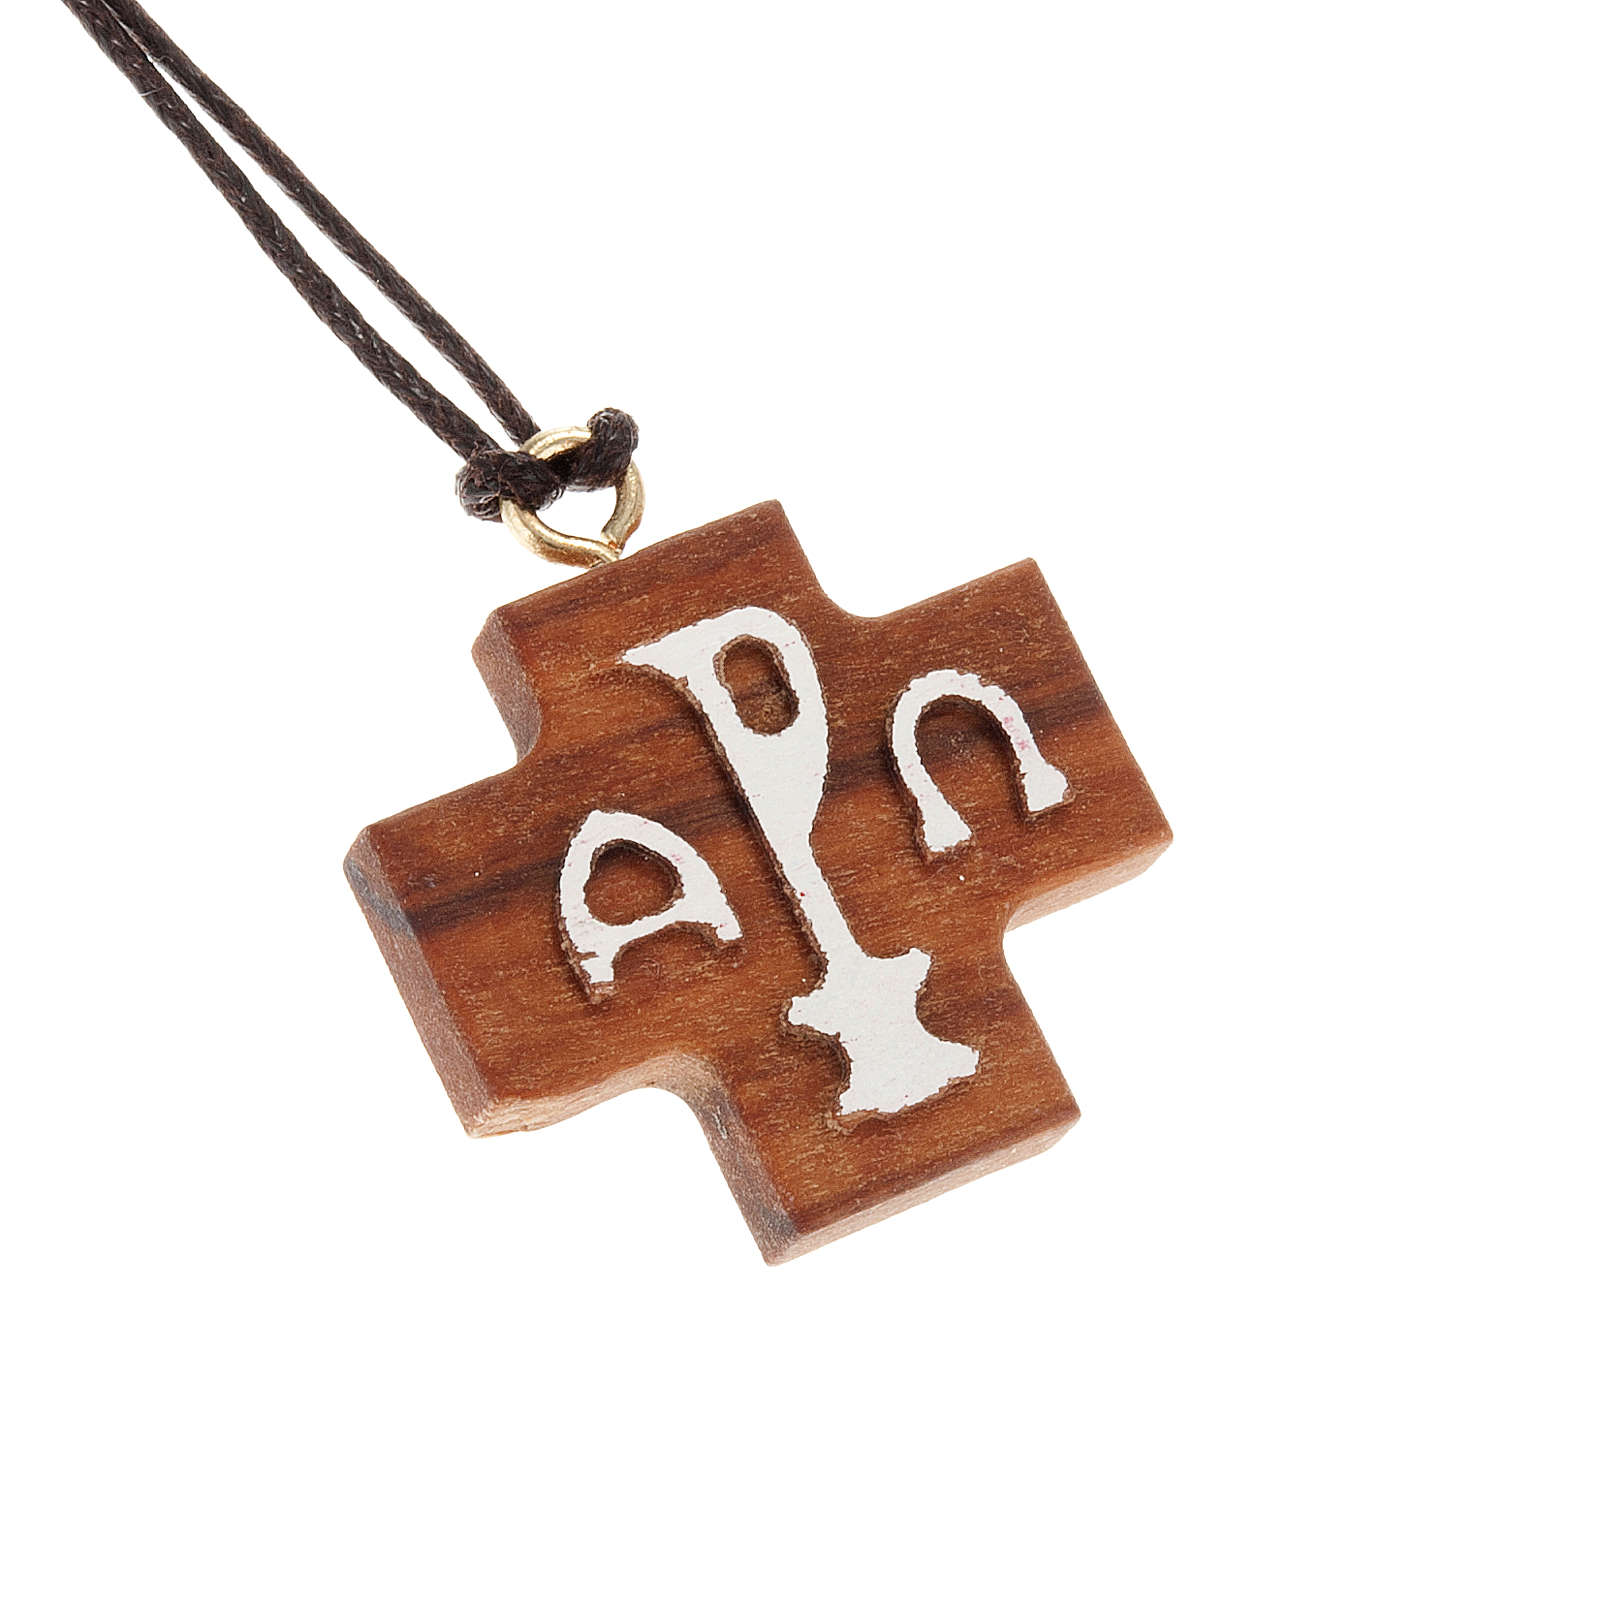 Cross pendant with Alpha, XP and Omega in relief 4